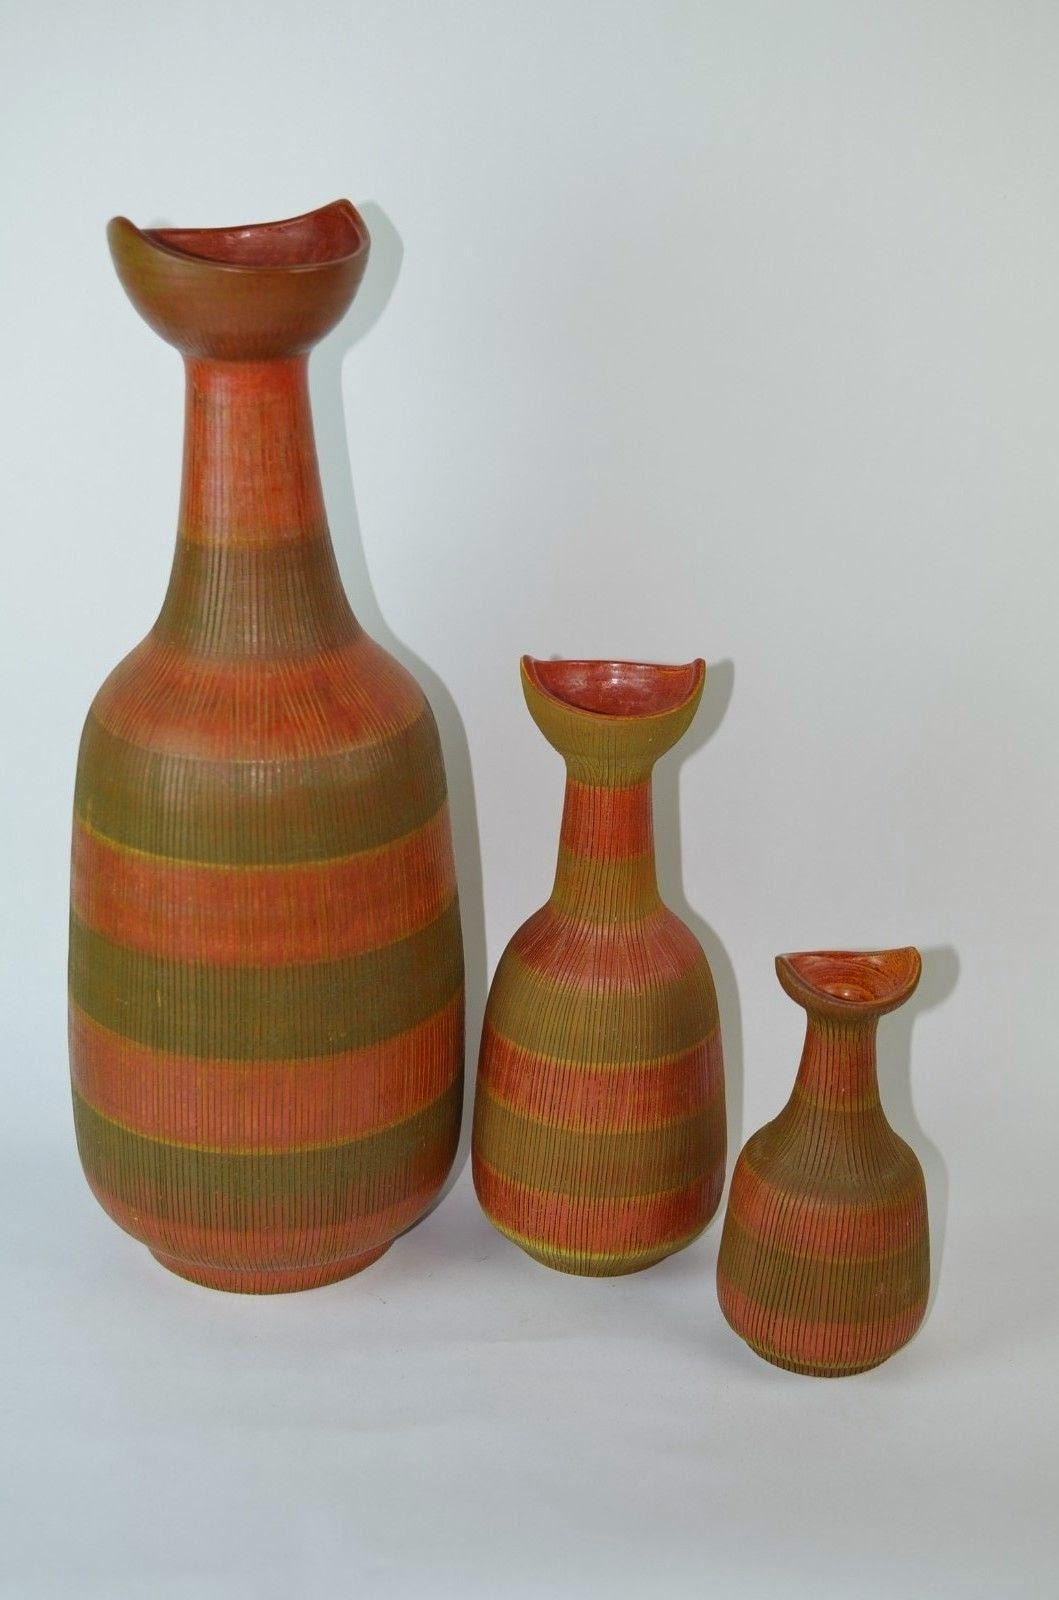 The end of history august 2014 a perfect set of 3 vases designed by aldo londi for bitossi circa 1950s the tallest one is just under 20 inches tall sold as a set of three reviewsmspy